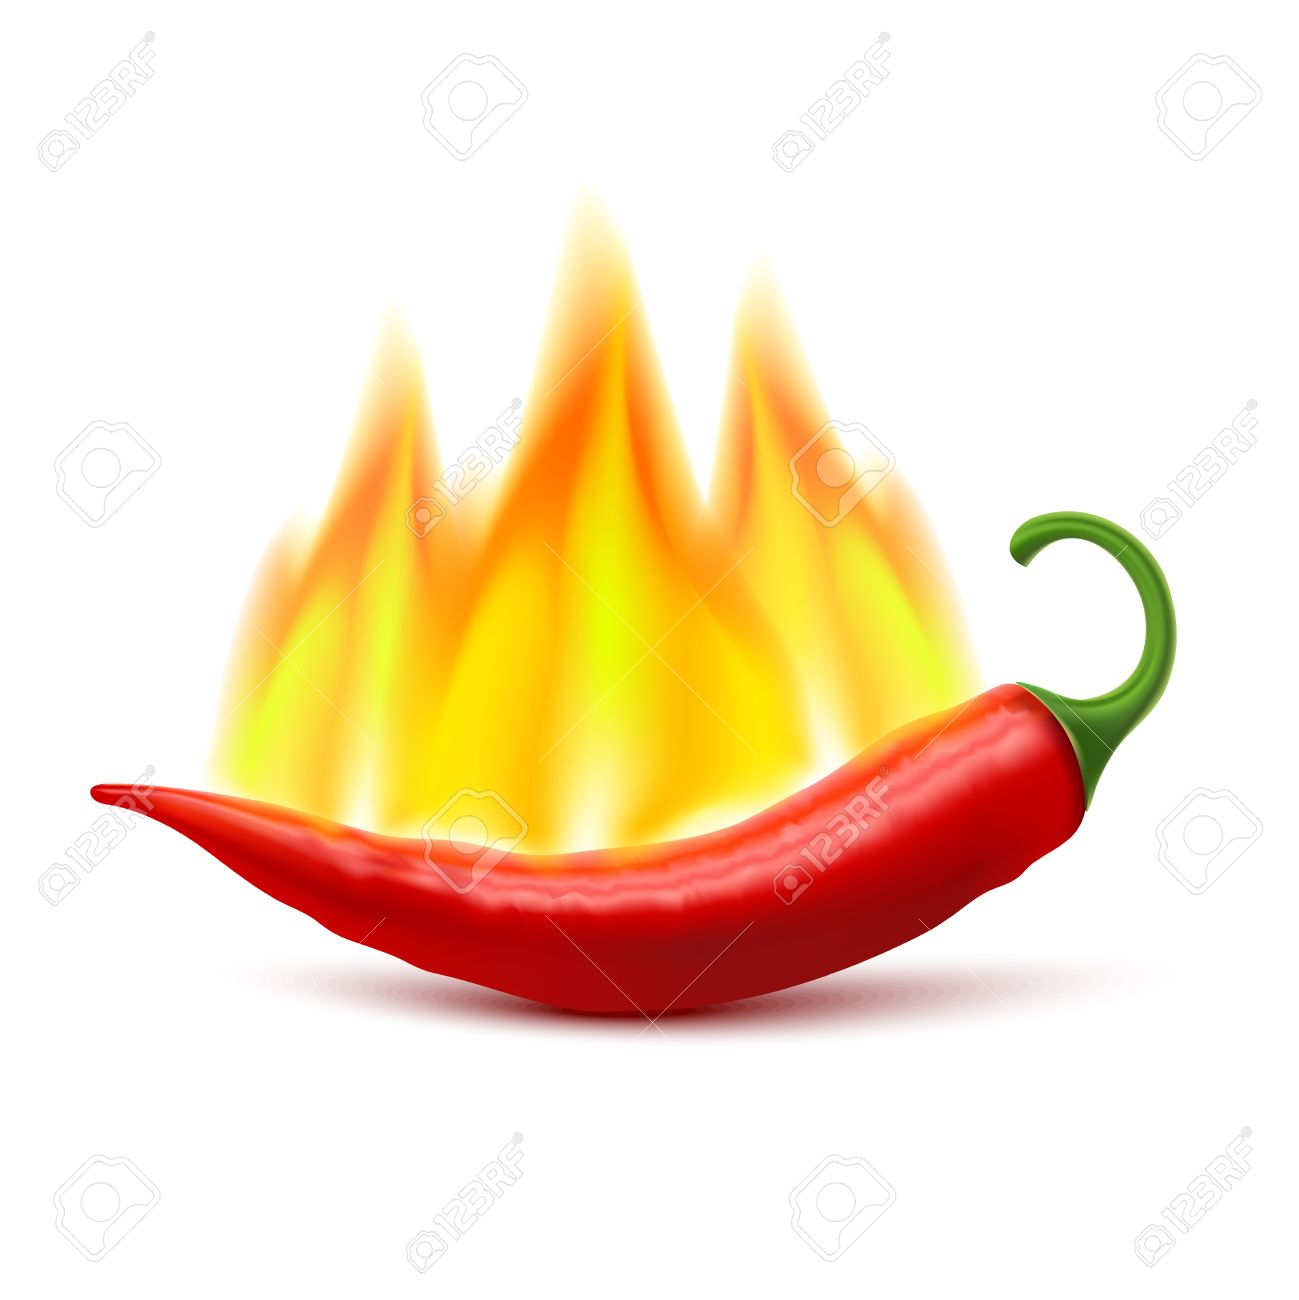 Flaming Red Chili Pepper Pod Image As Symbol Of Spicy World Hottest